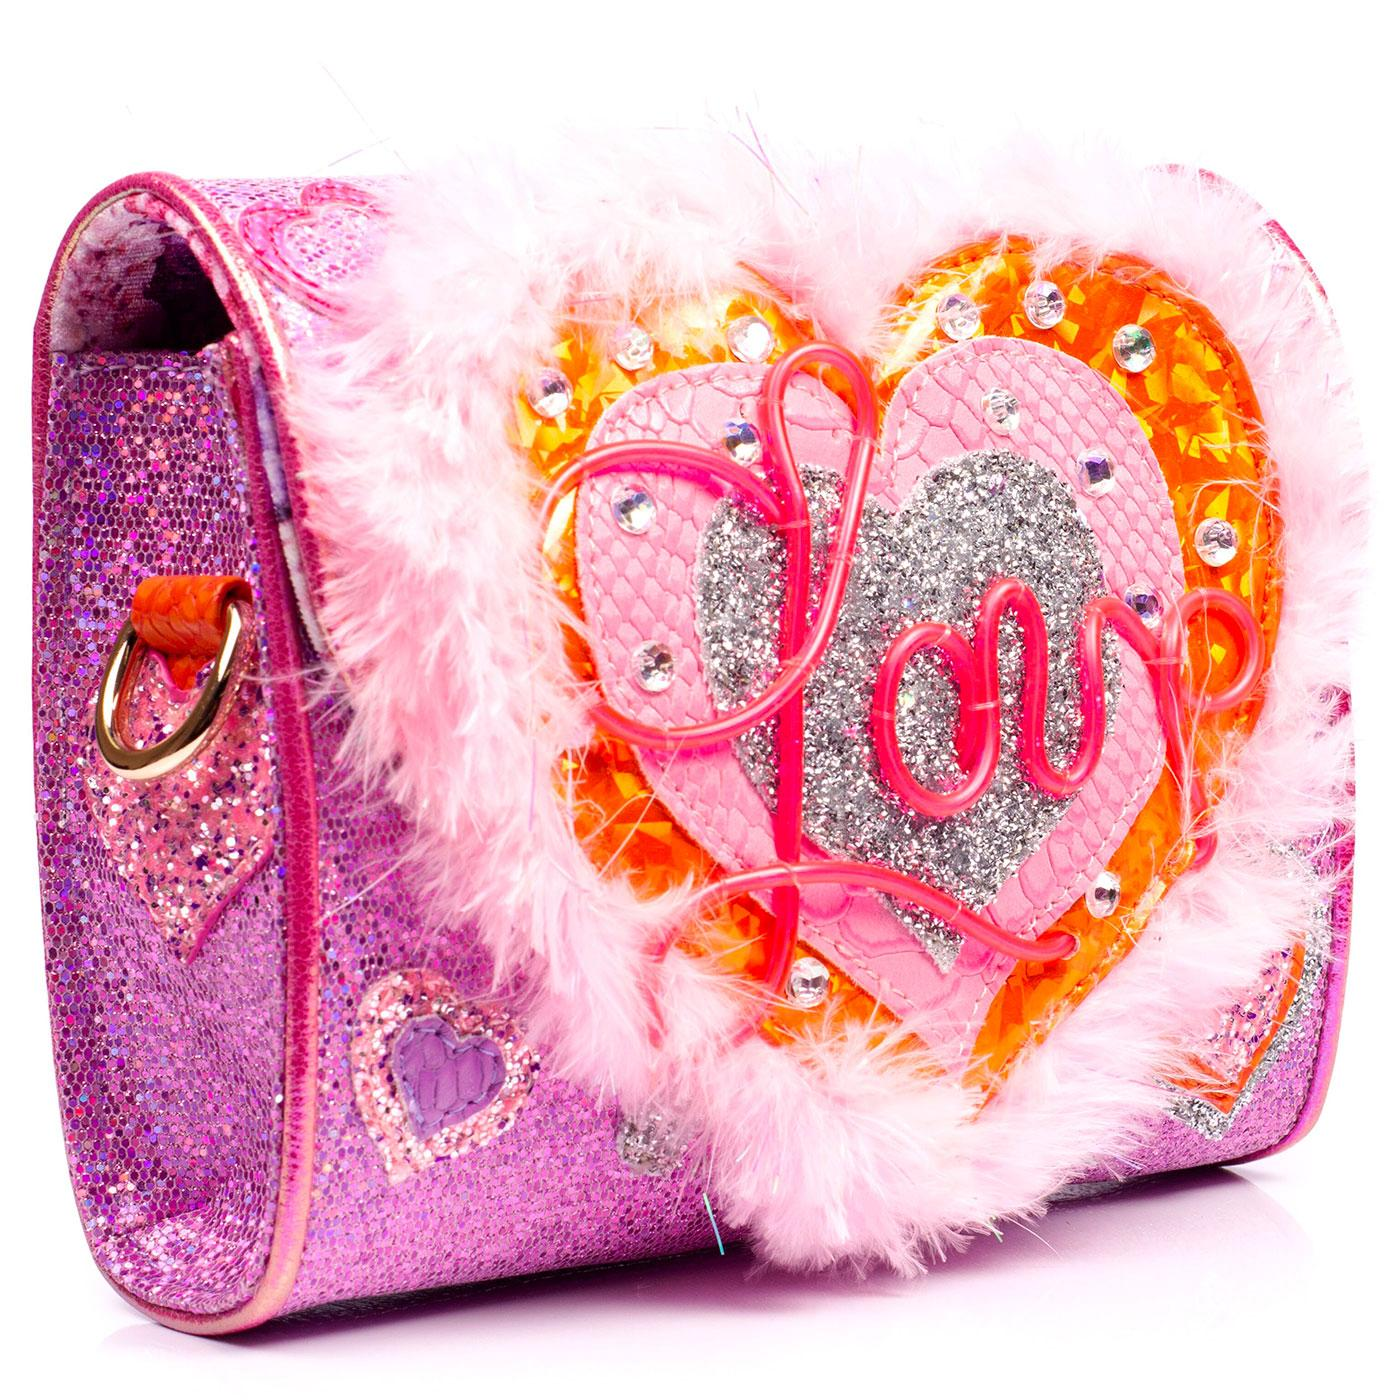 Hunnie Bunnie IRREGULAR CHOICE Family Reunion Bag